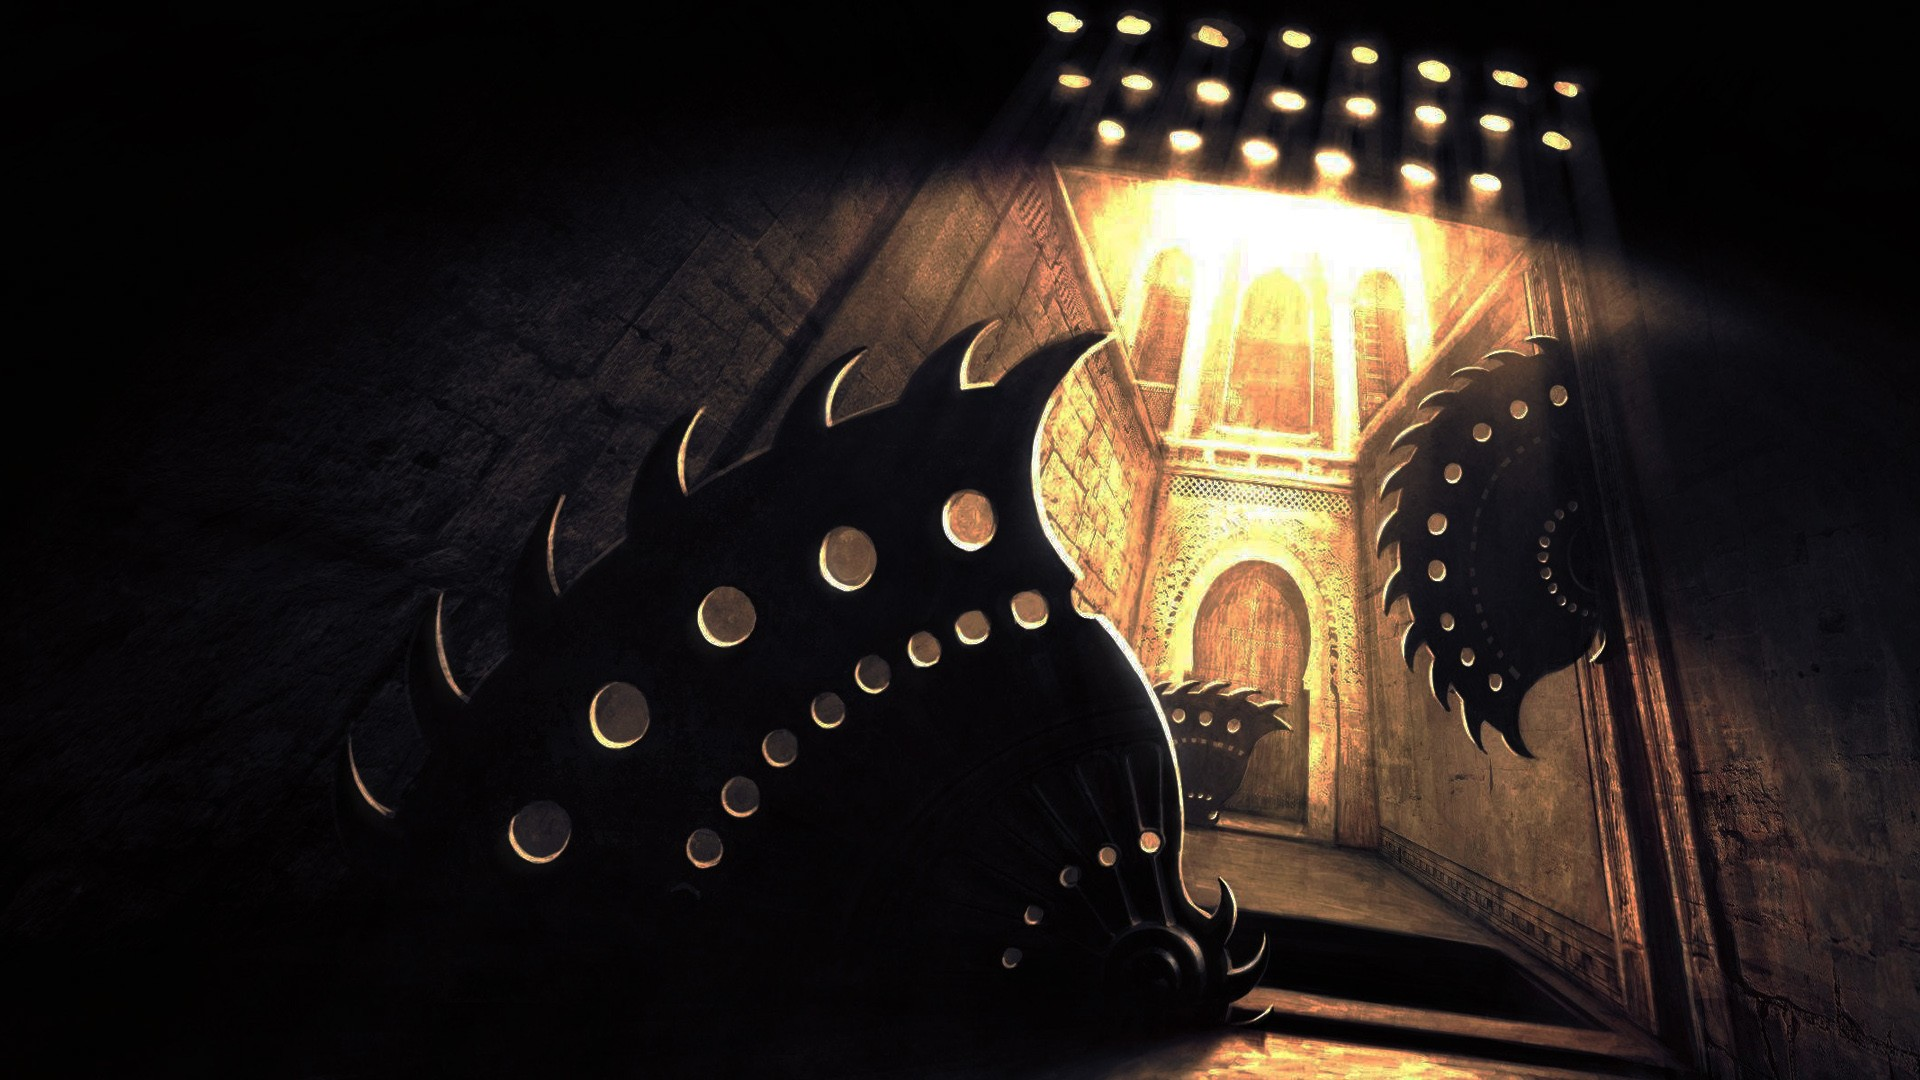 Prince Of Persia Hd Wallpaper Video Games Prince Of Persia Warrior Within Wallpaper